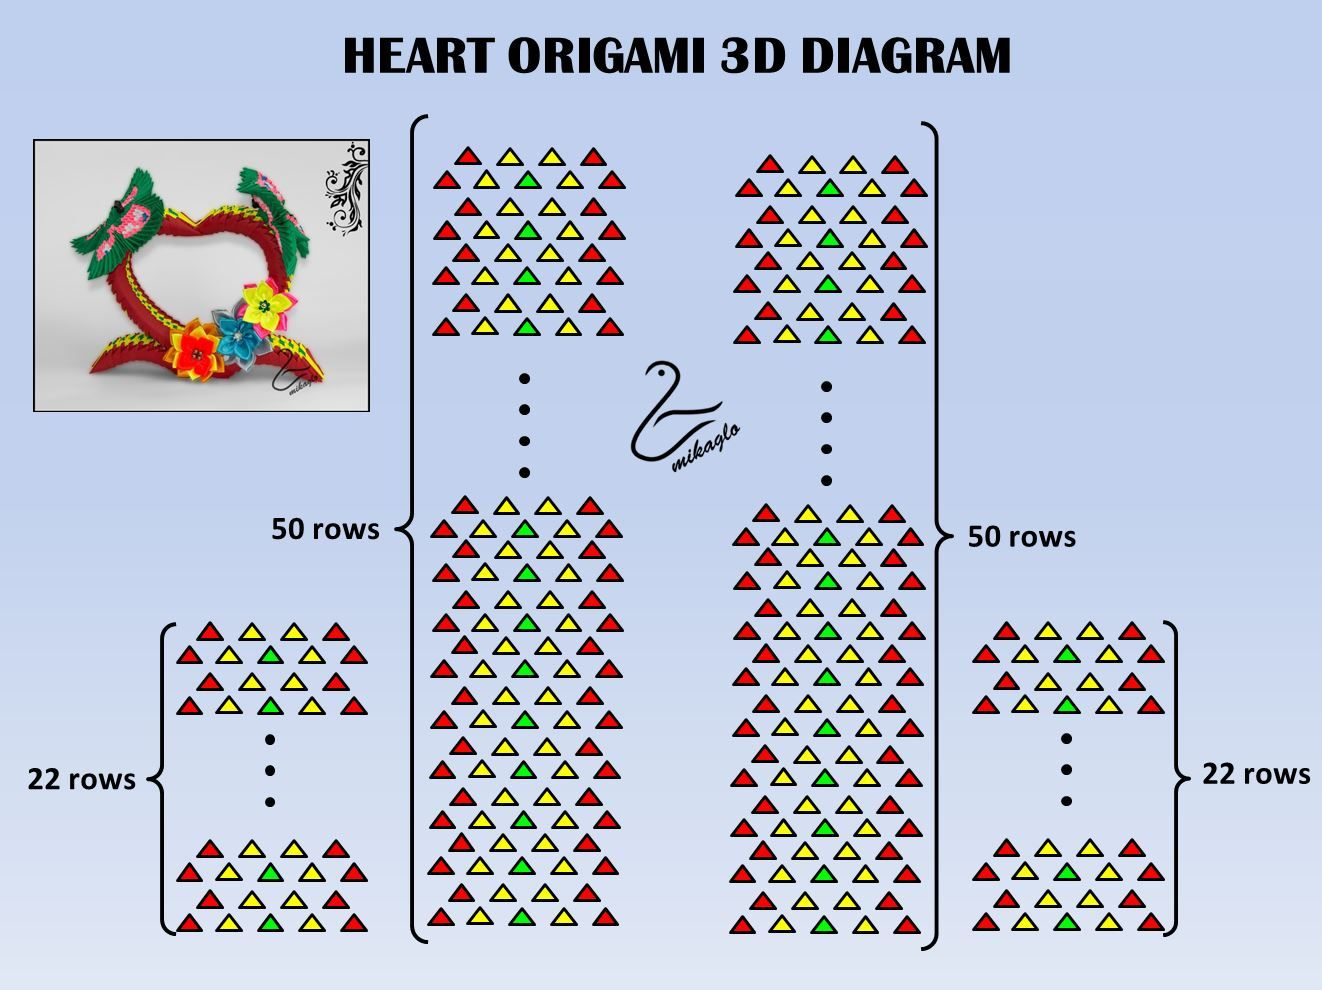 patterns 3d origami - Google zoeken | 3D origami used ... - photo#26